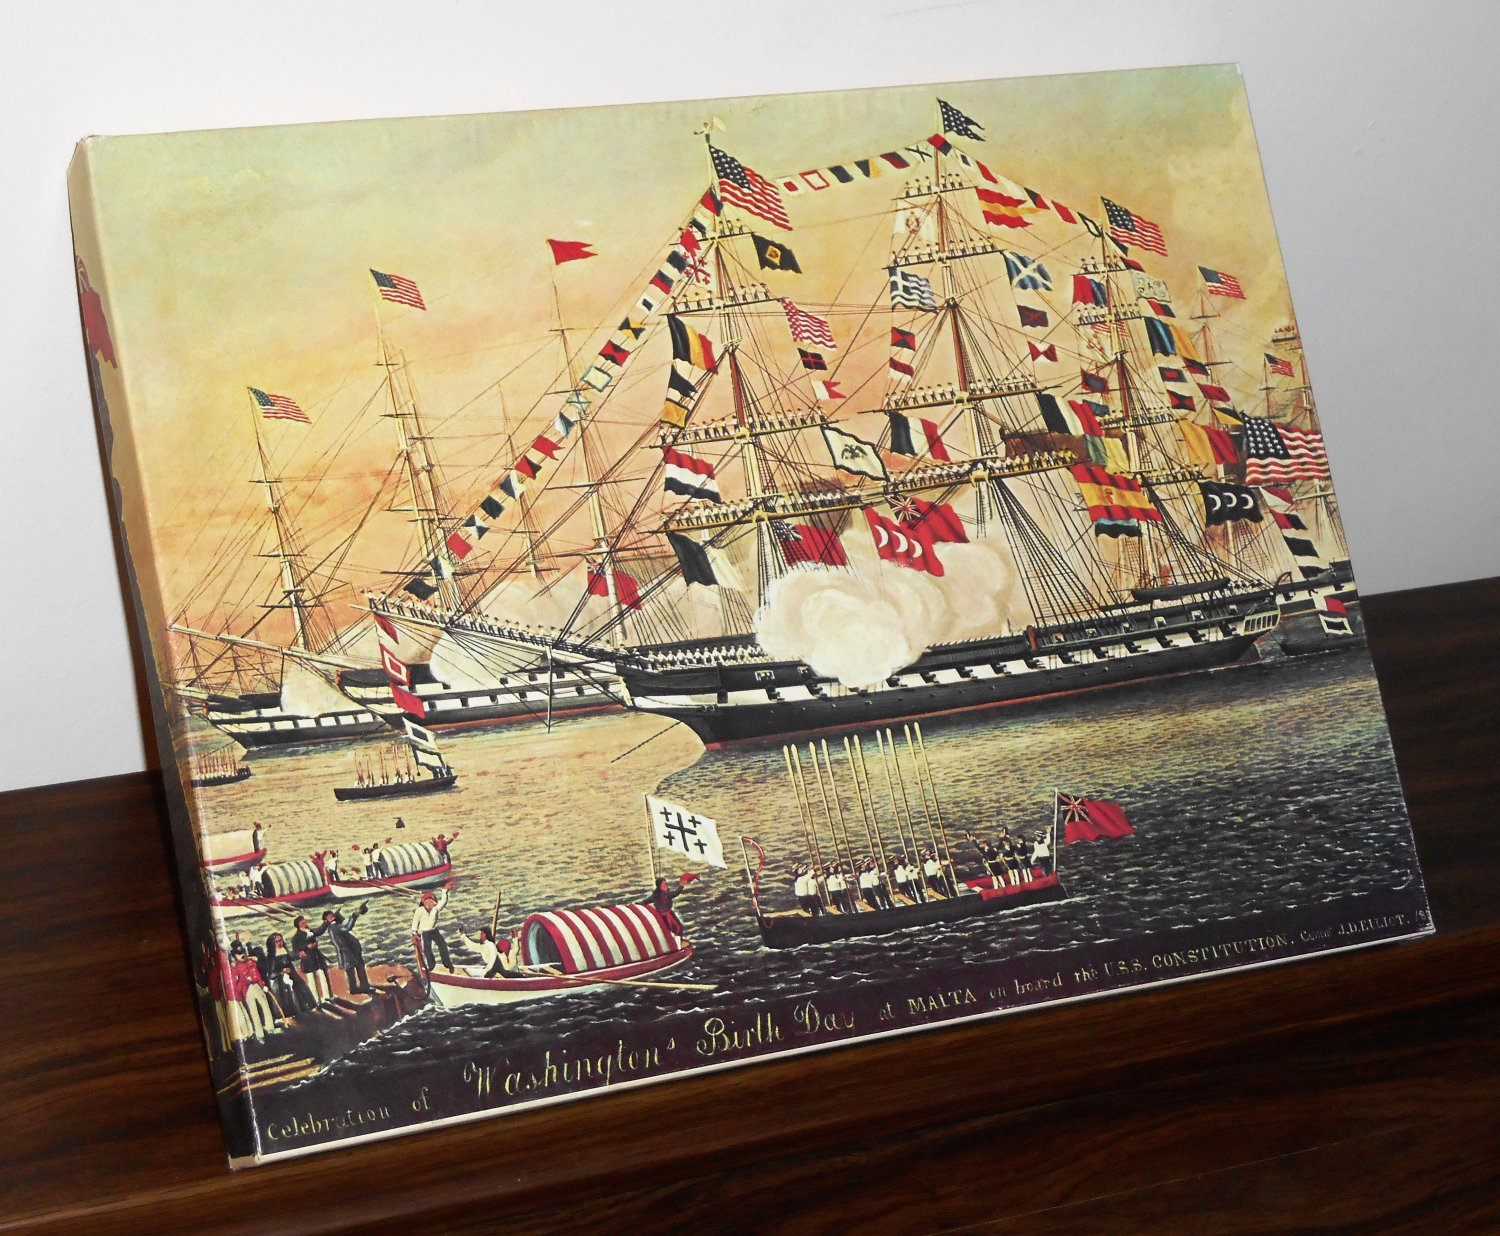 USS U.S.S. Constitution Jigsaw Puzzle 405 Pieces George Washington's Birthday at Malta Complete 1974